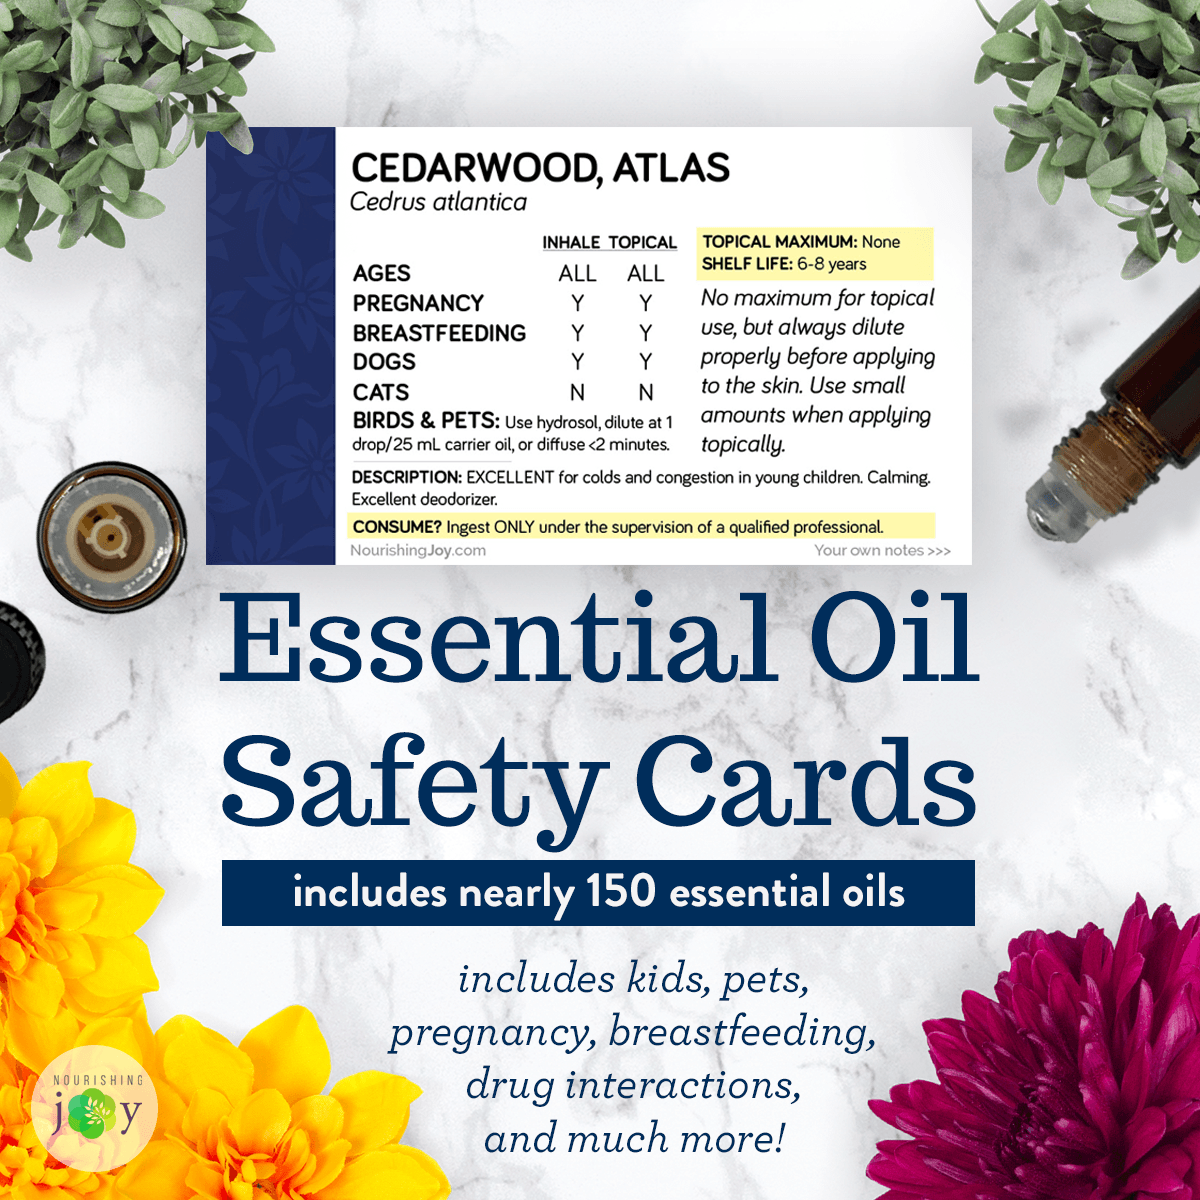 Essential Oil Safety Cards